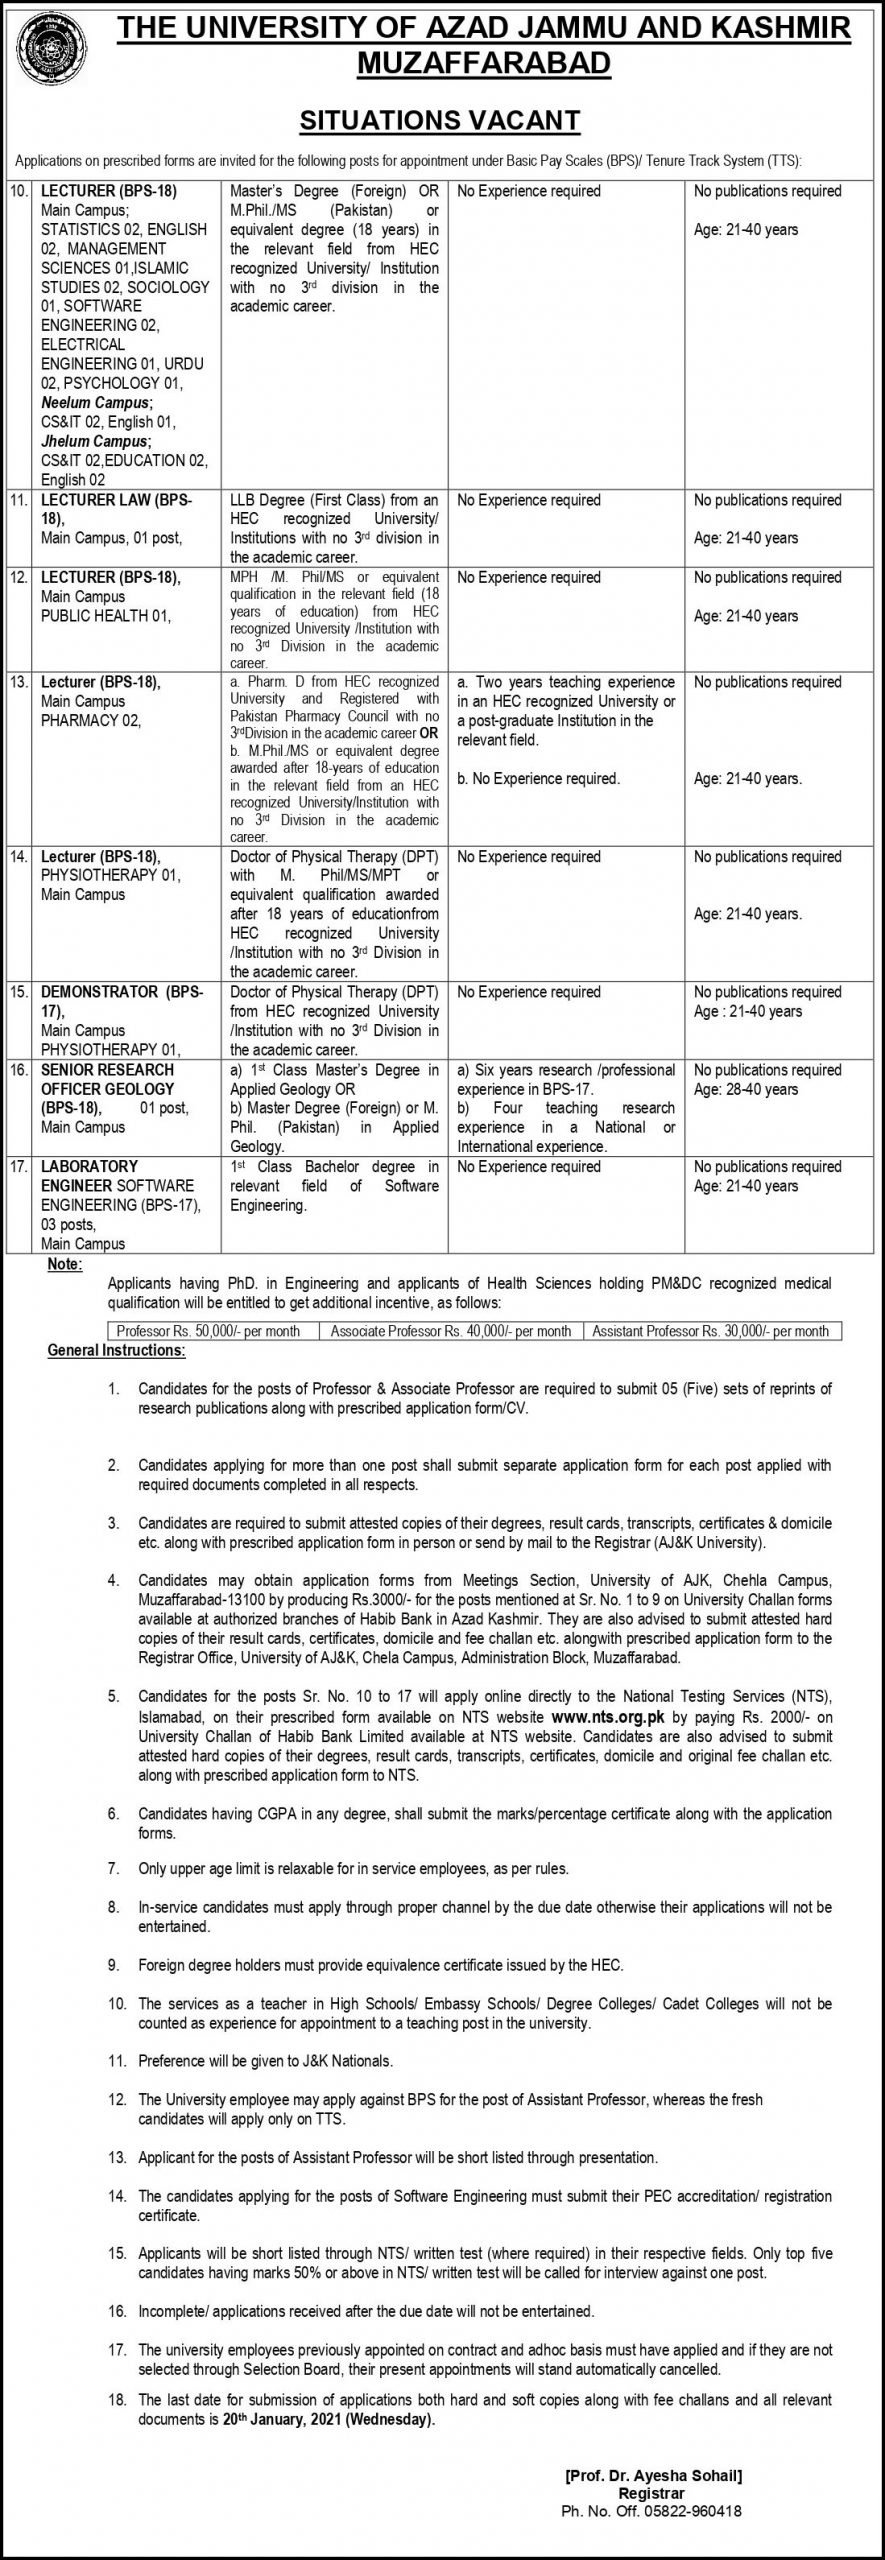 University of Azad Jammu And Kashmir Muzaffarabad NTS Jobs 2021 Apply Online